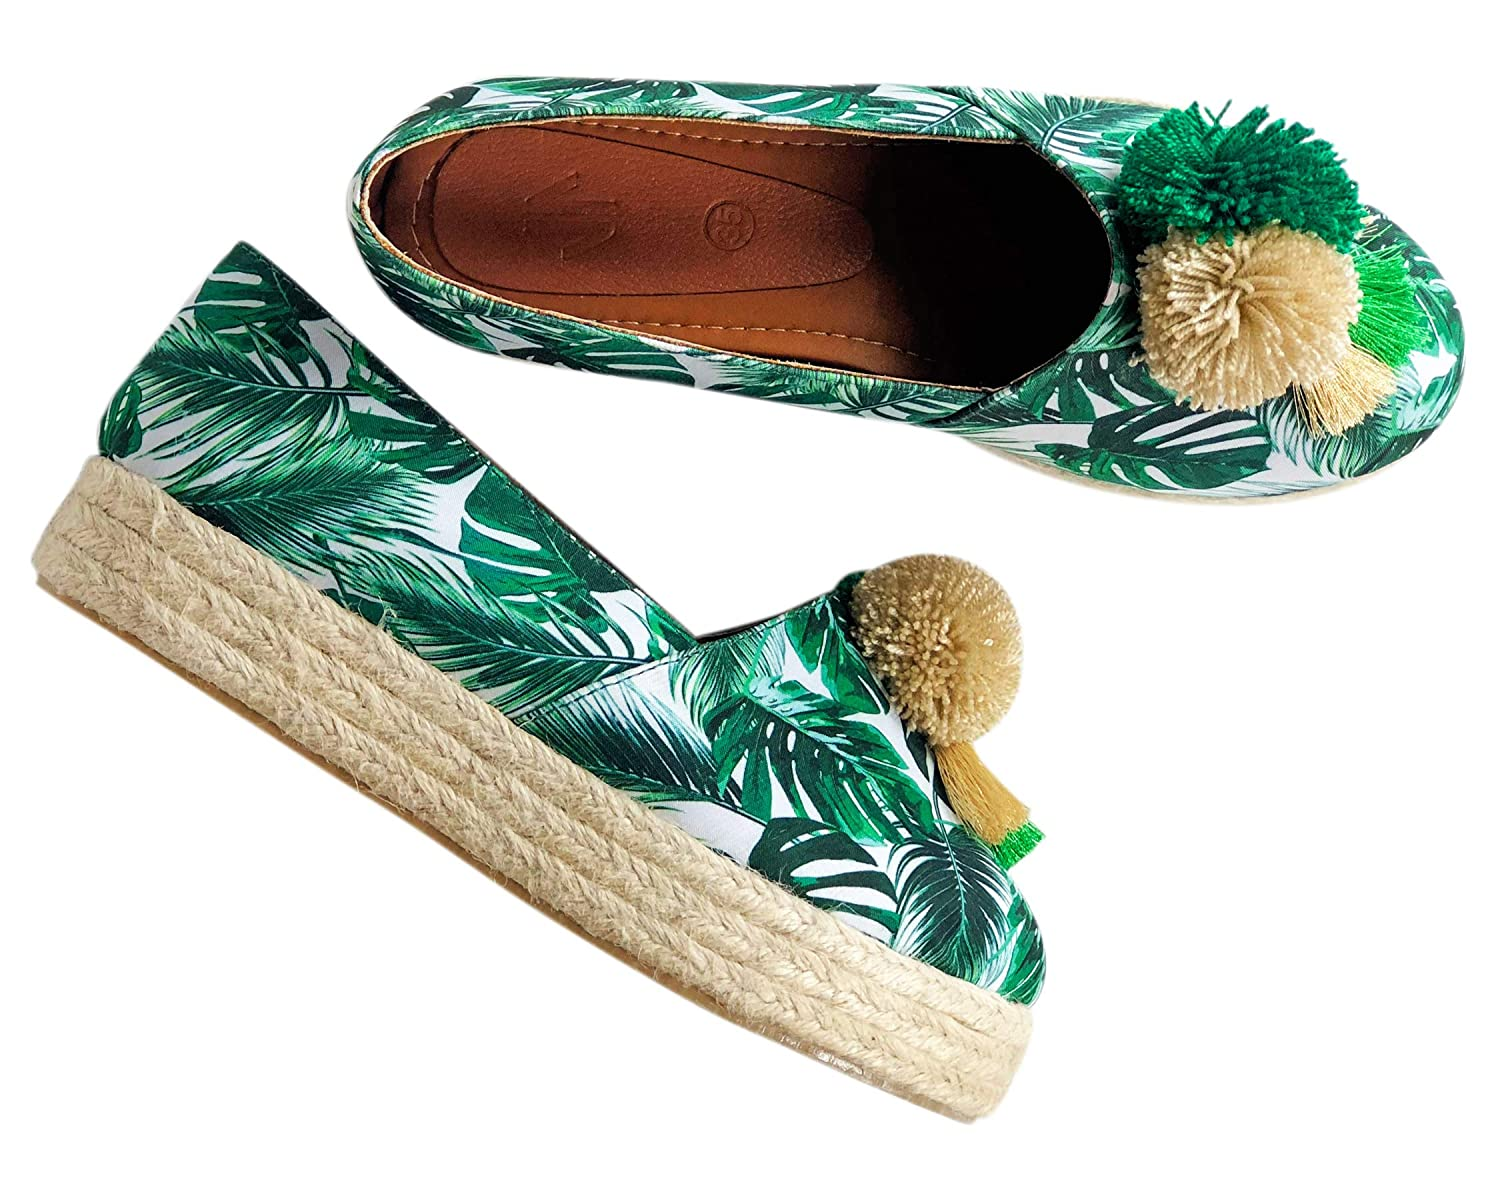 Amazon.com | Vida Leather Moccasin Slippers for Women | Mocasines para Mujer | Slippers